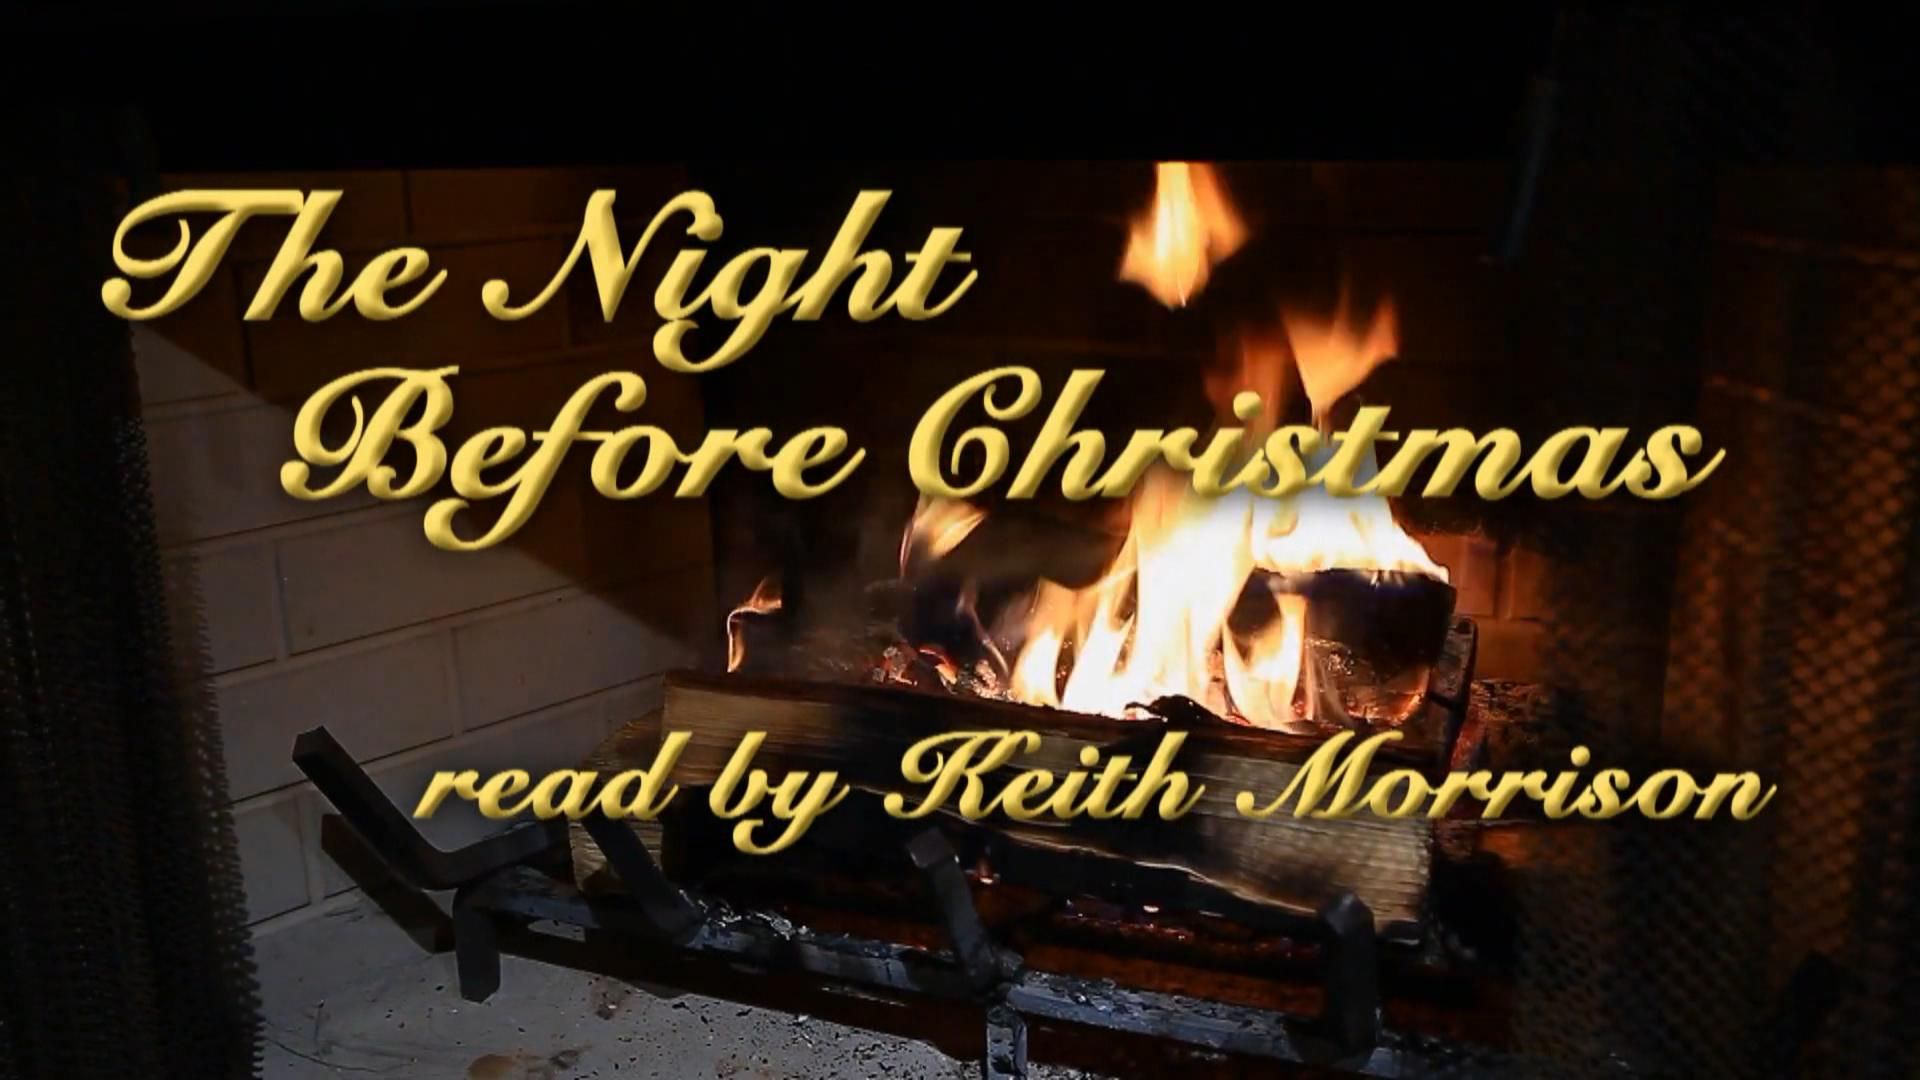 keith morrison reads the night before christmas